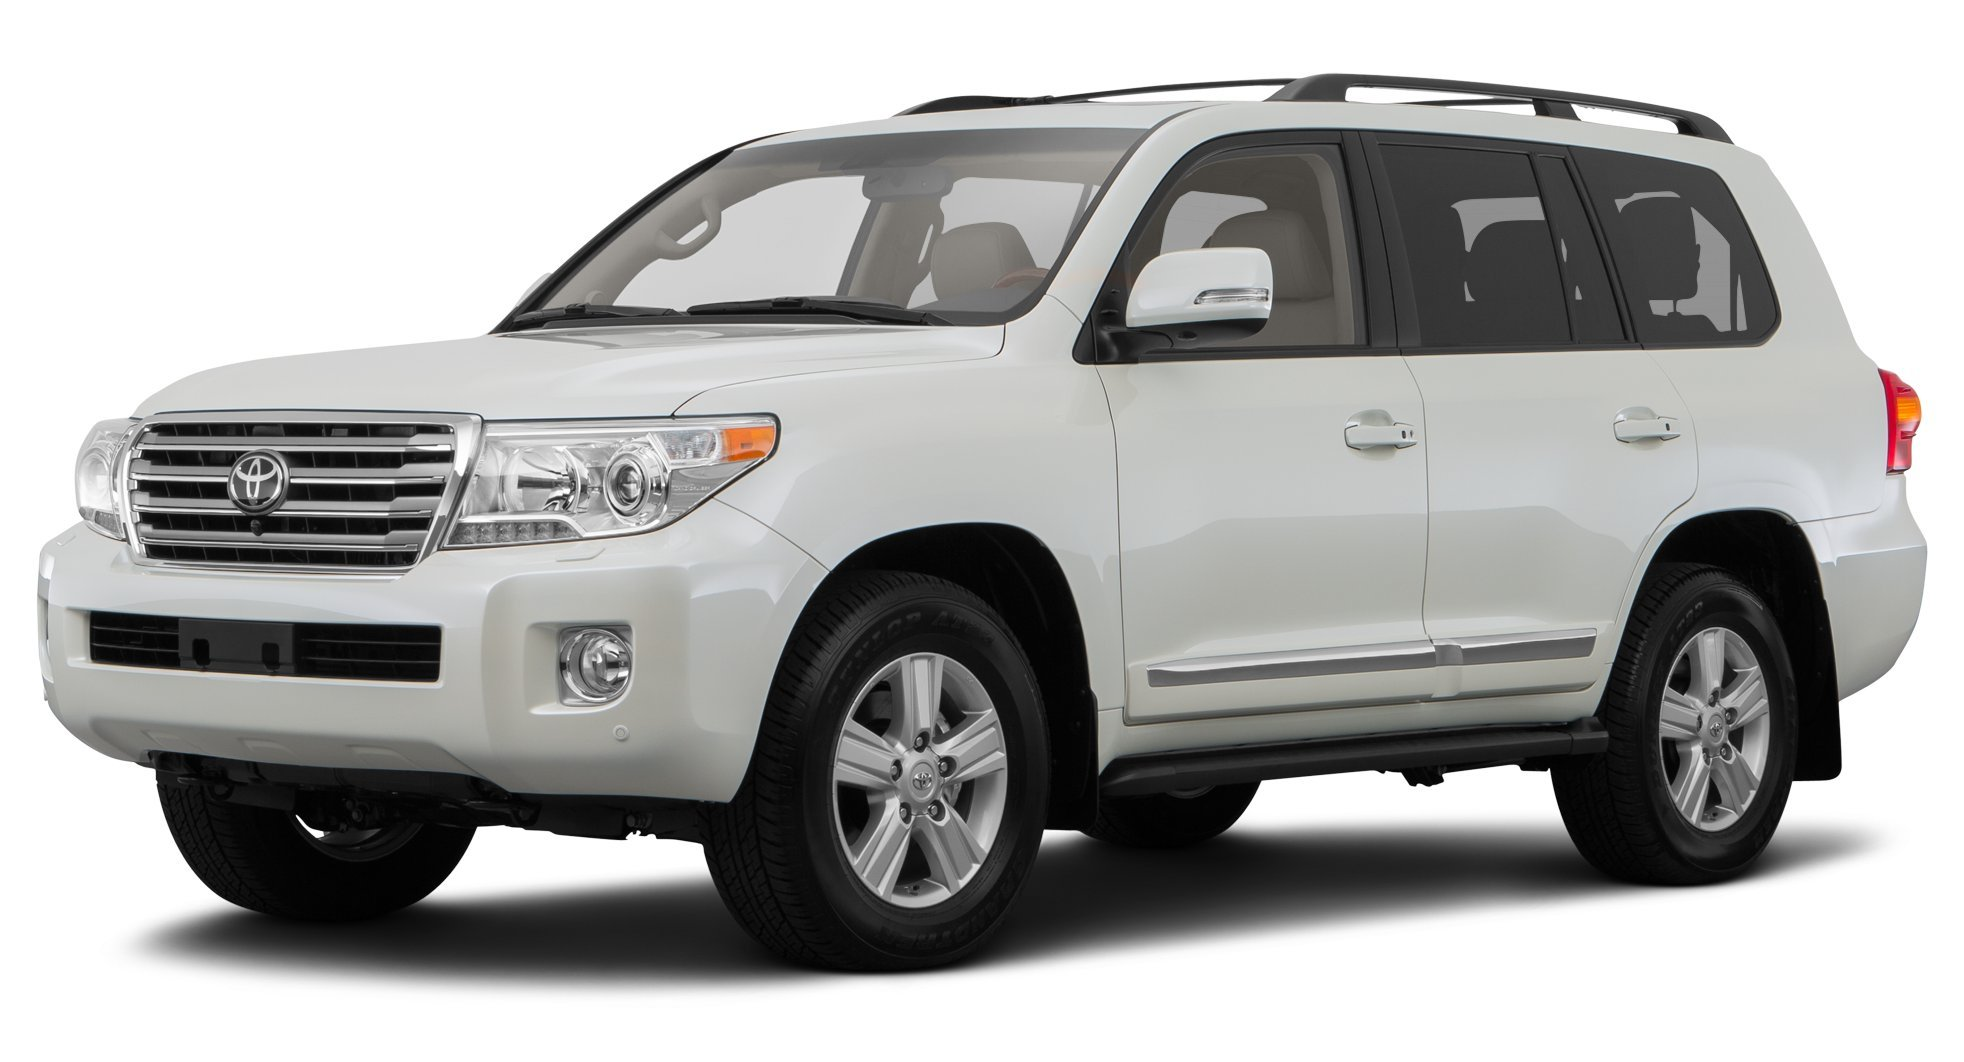 2016 toyota land cruiser reviews images and specs vehicles. Black Bedroom Furniture Sets. Home Design Ideas